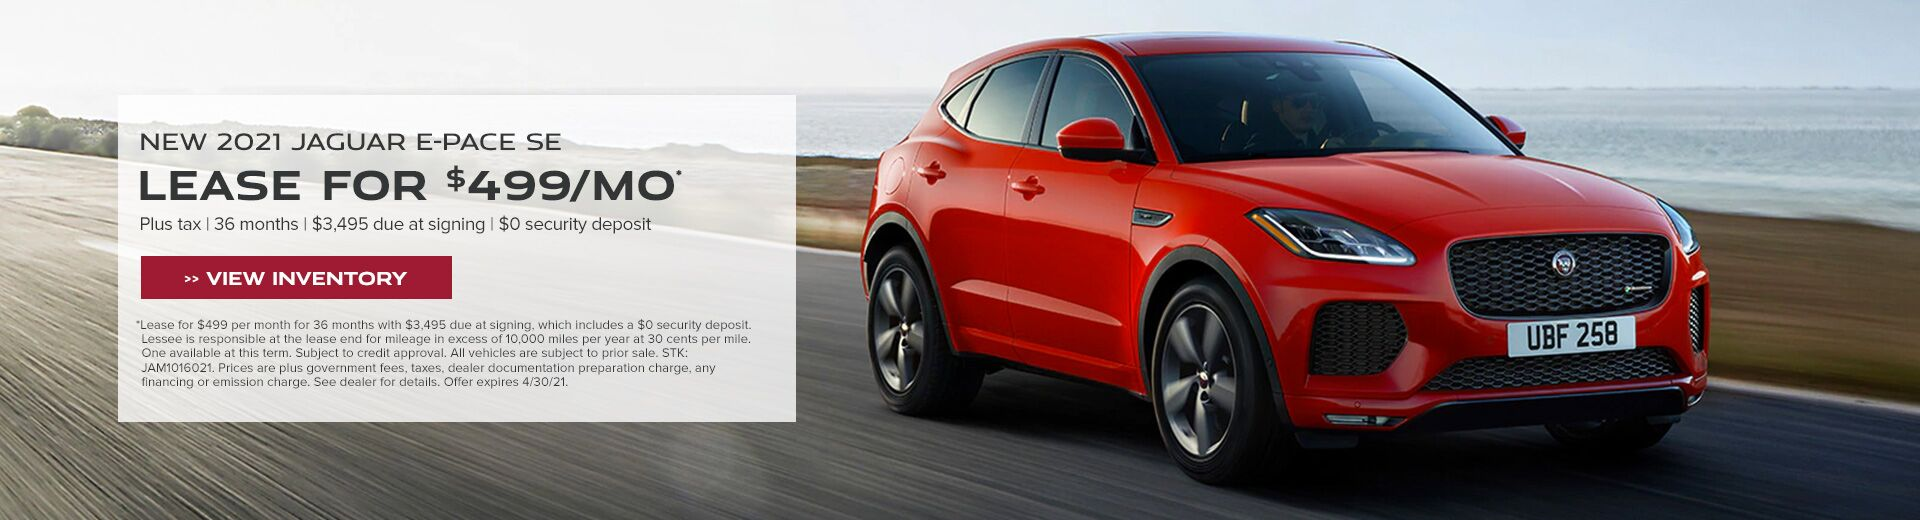 New 2021 Jaguar E-PACE SE